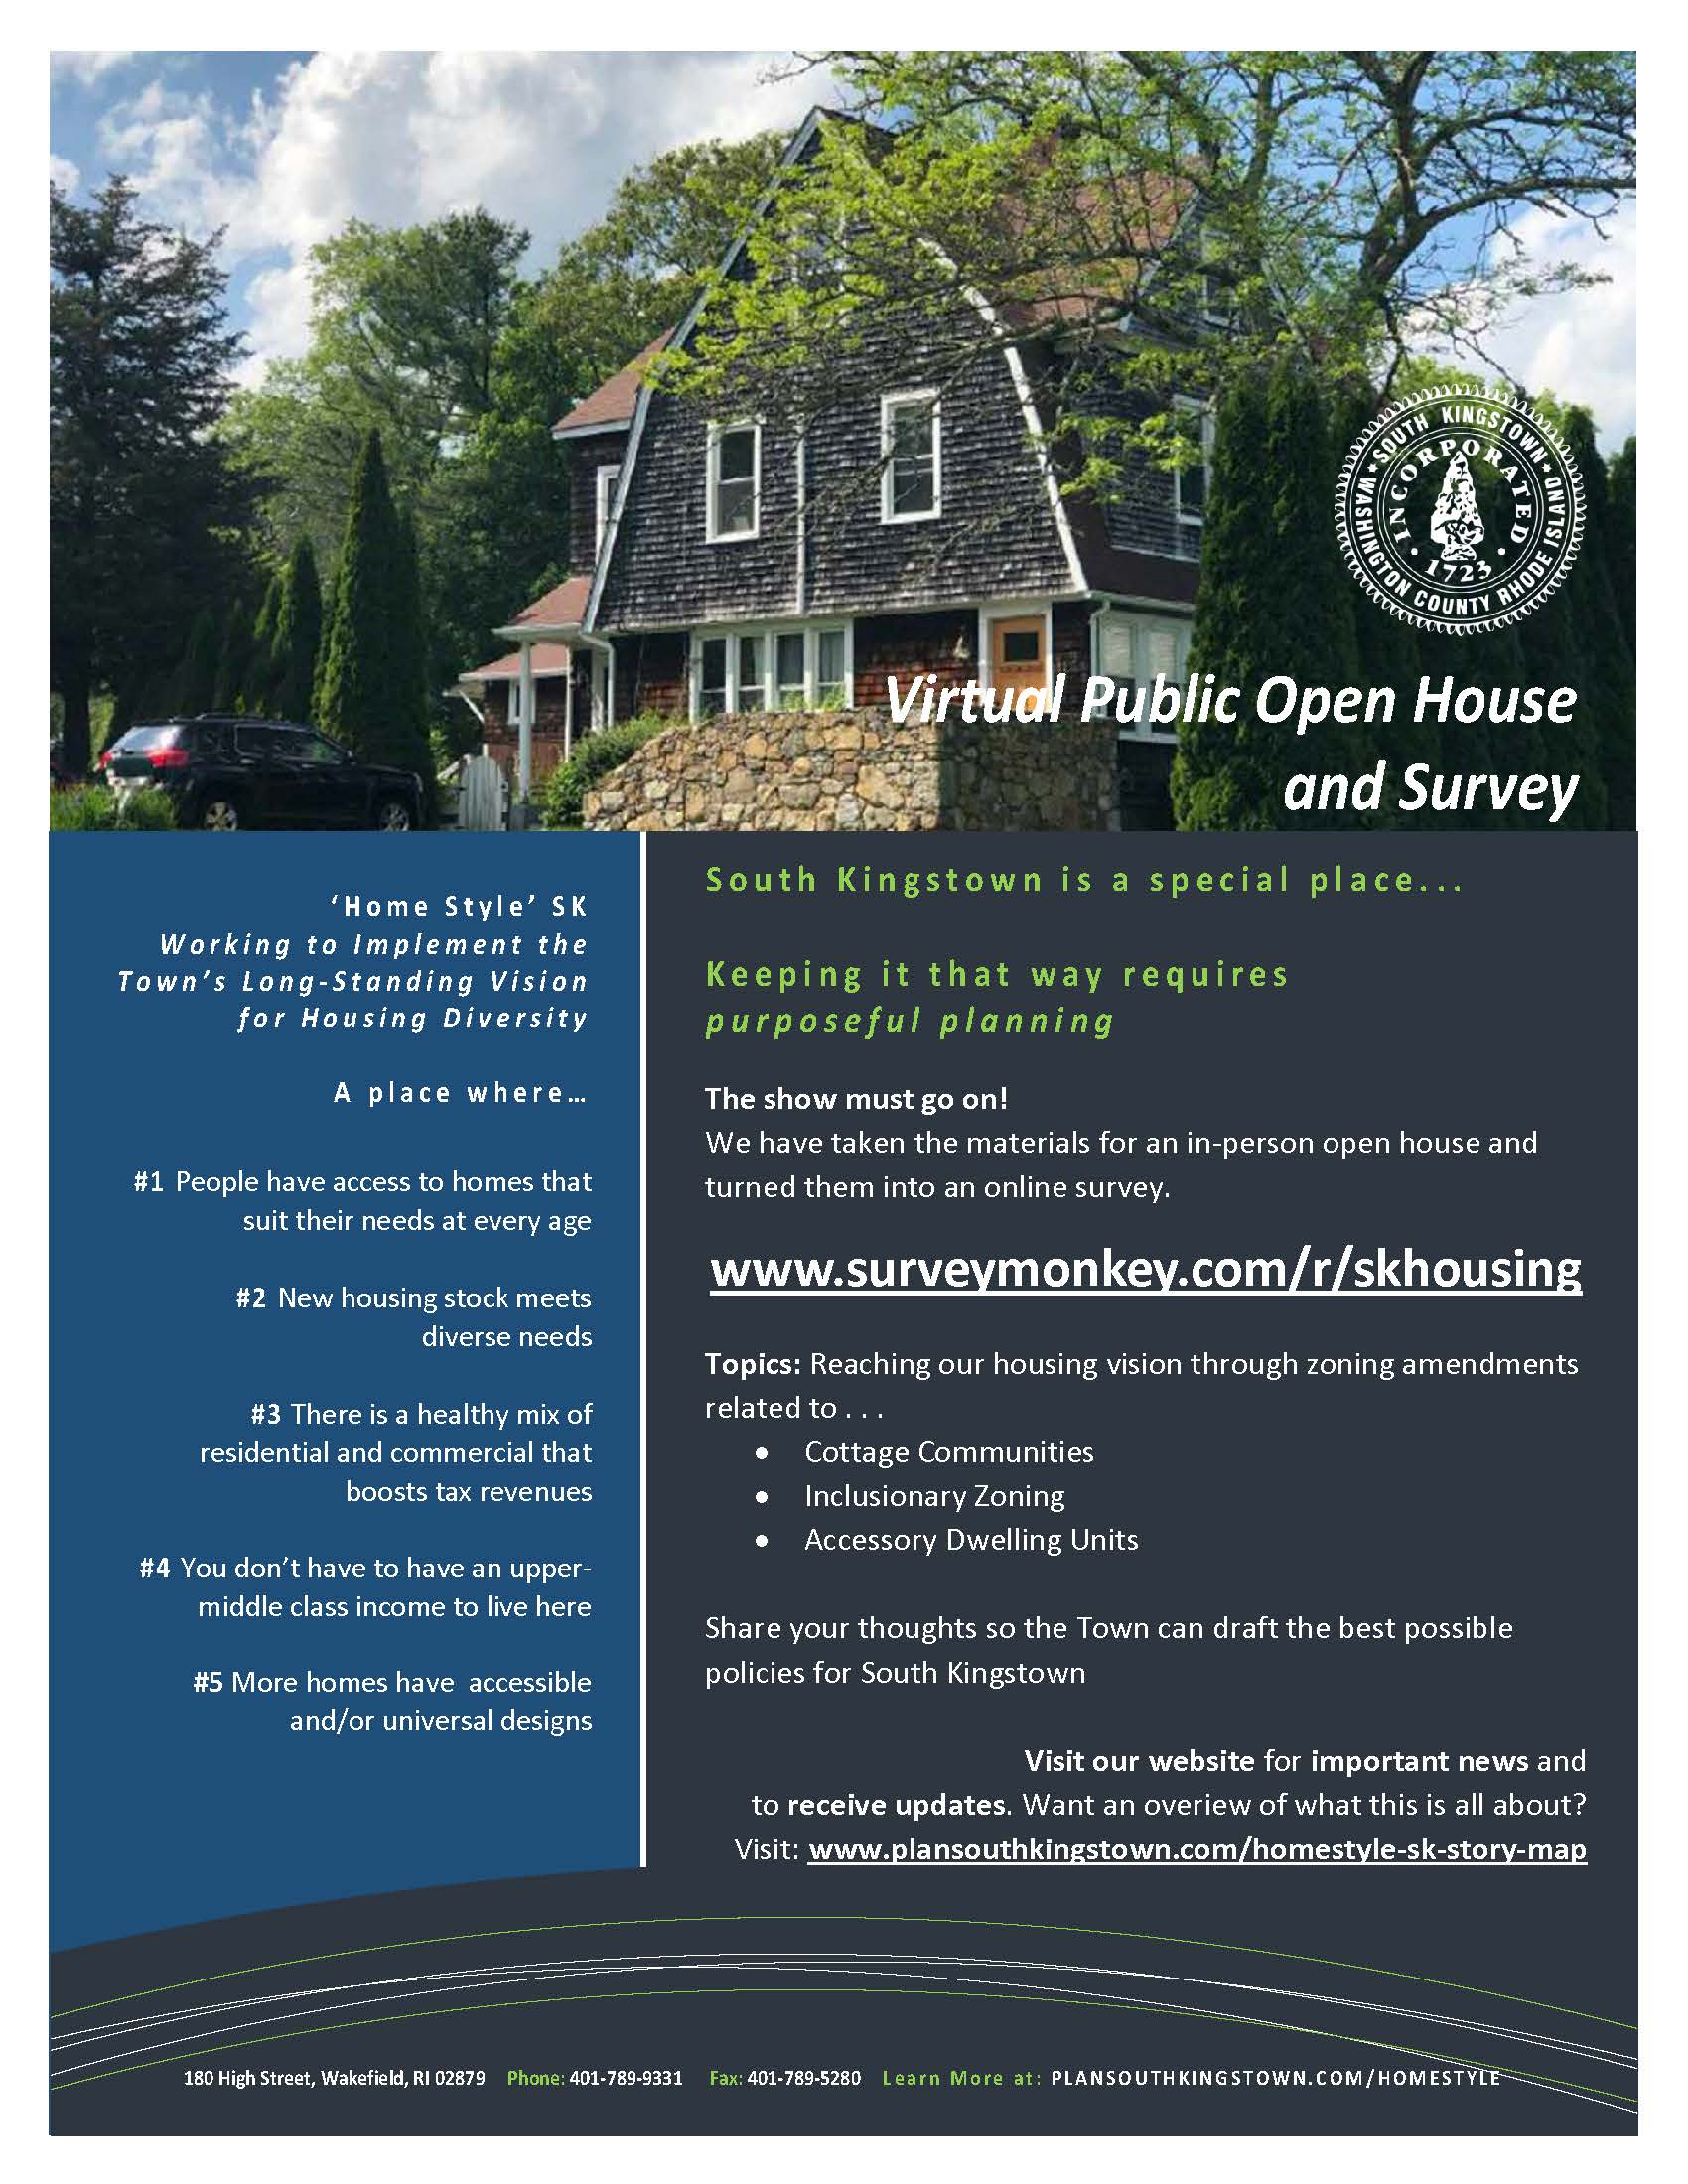 Virtual Open House Advertising Flyer